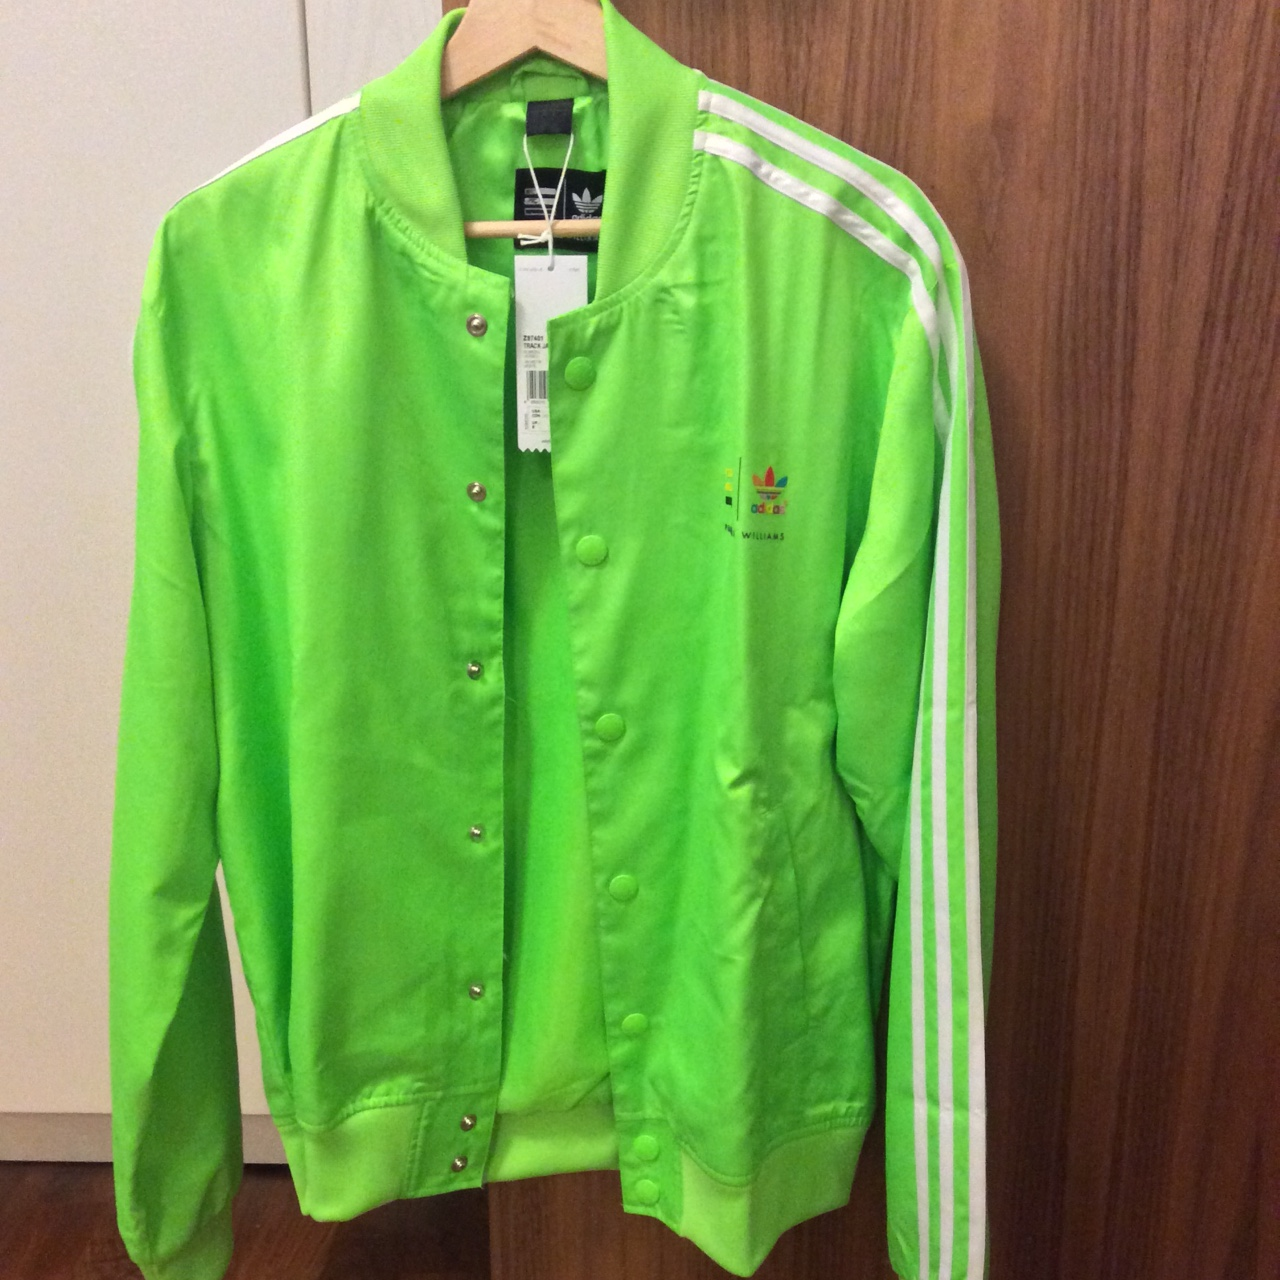 Awesome adidas x Pharrell Williams neon green Depop